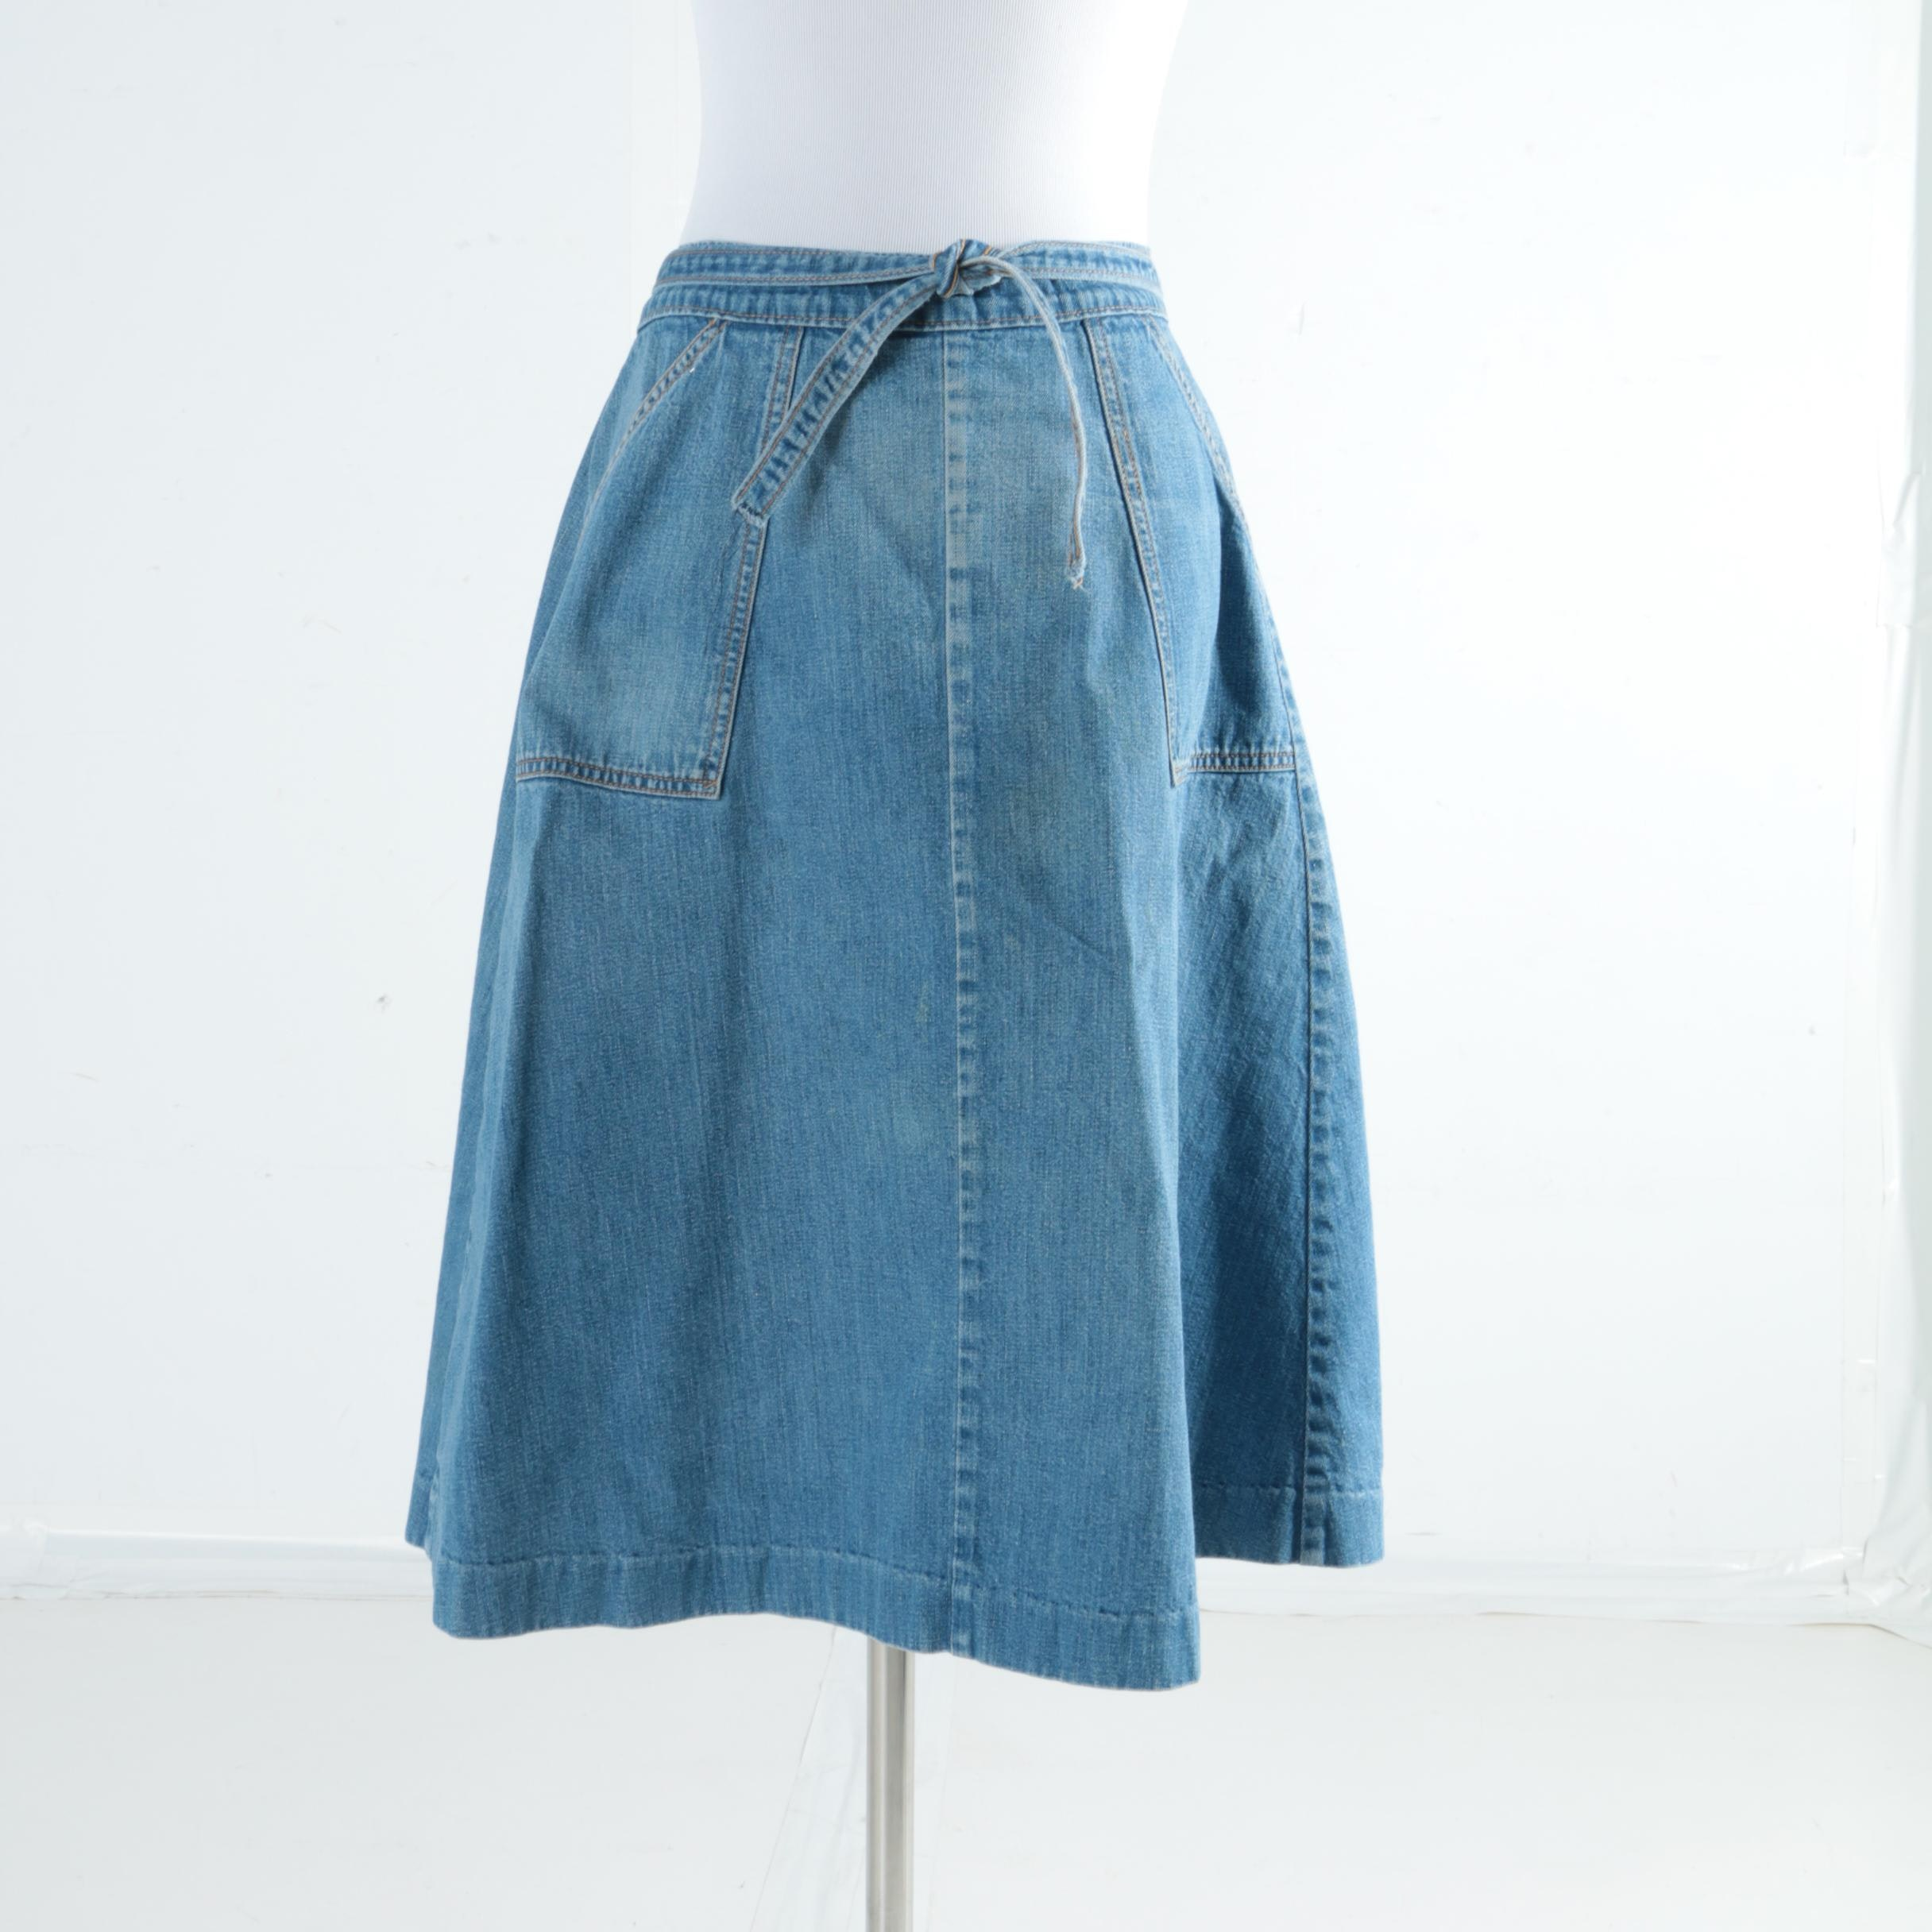 Circa 1970s Vintage LeJean Denim Wrap Skirt